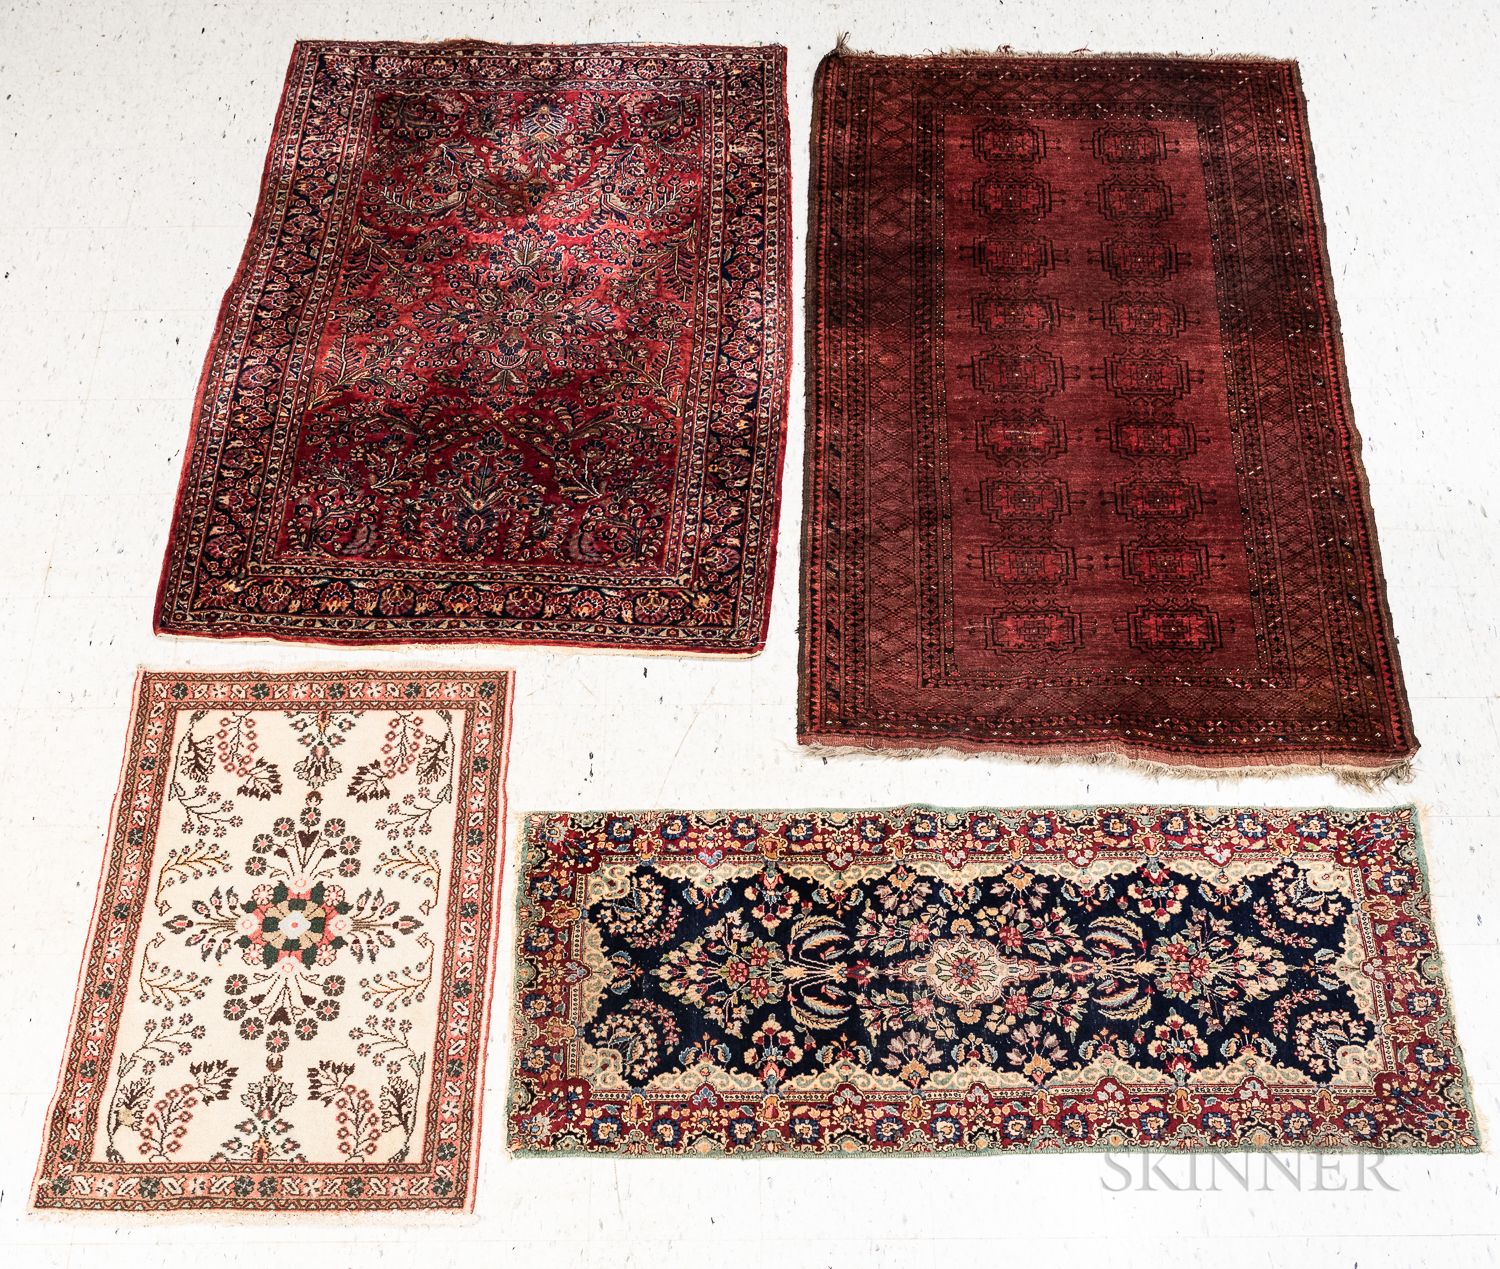 Group of Rugs